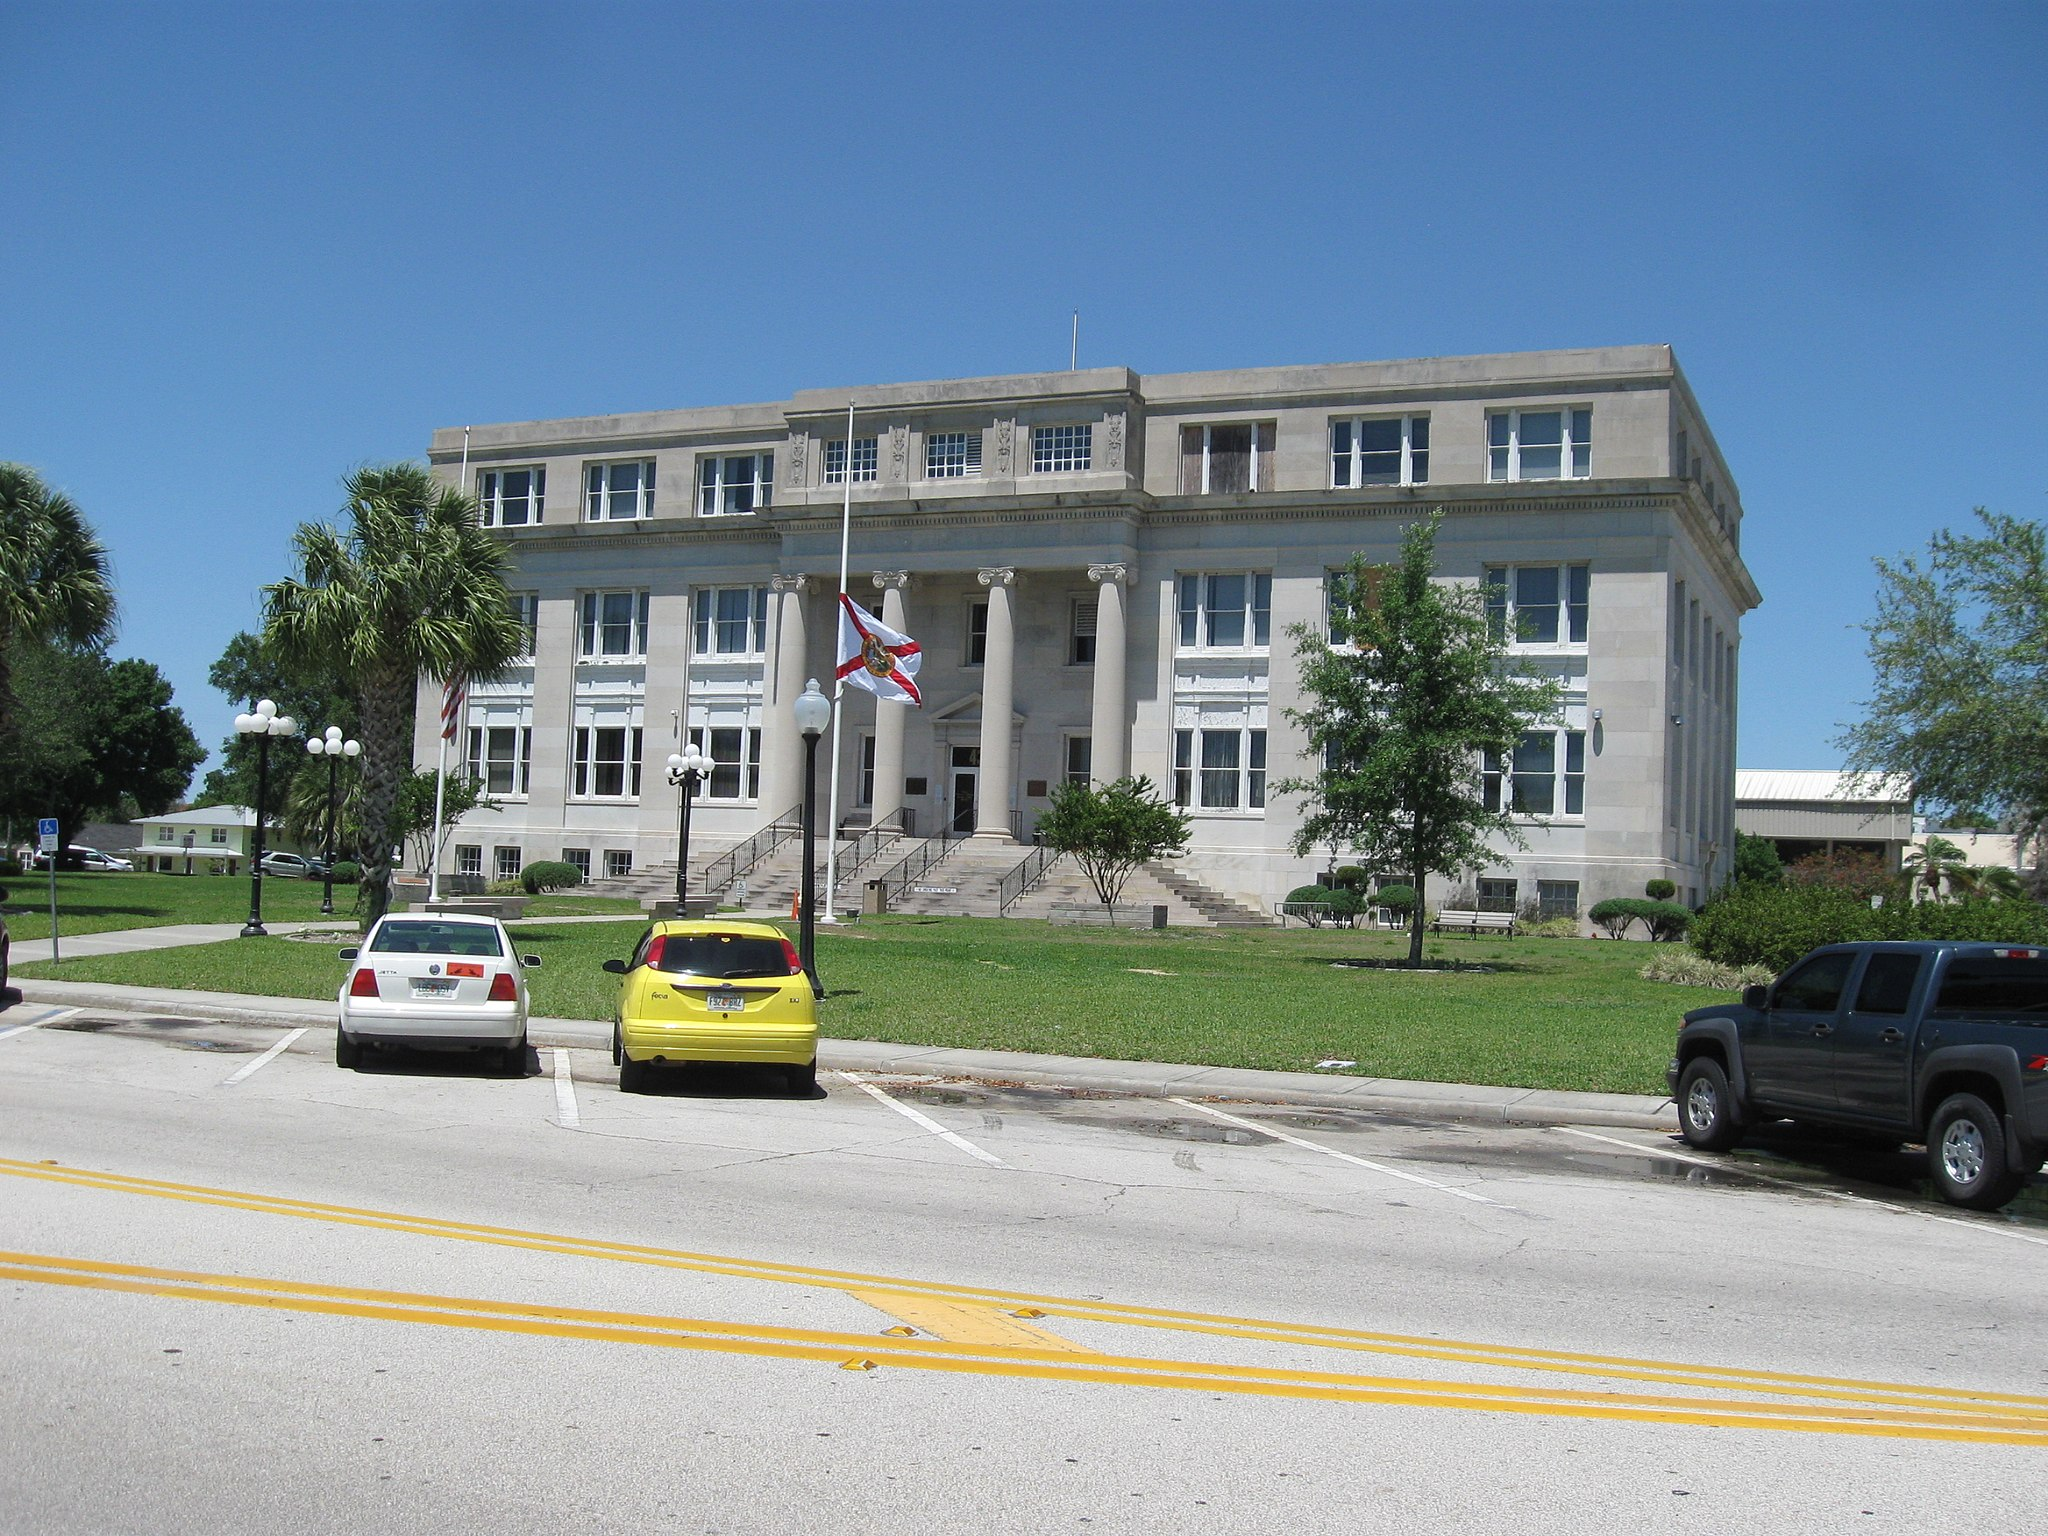 Sebring, FL, Courthouse, Highlands County, 04-26-2010 (13)